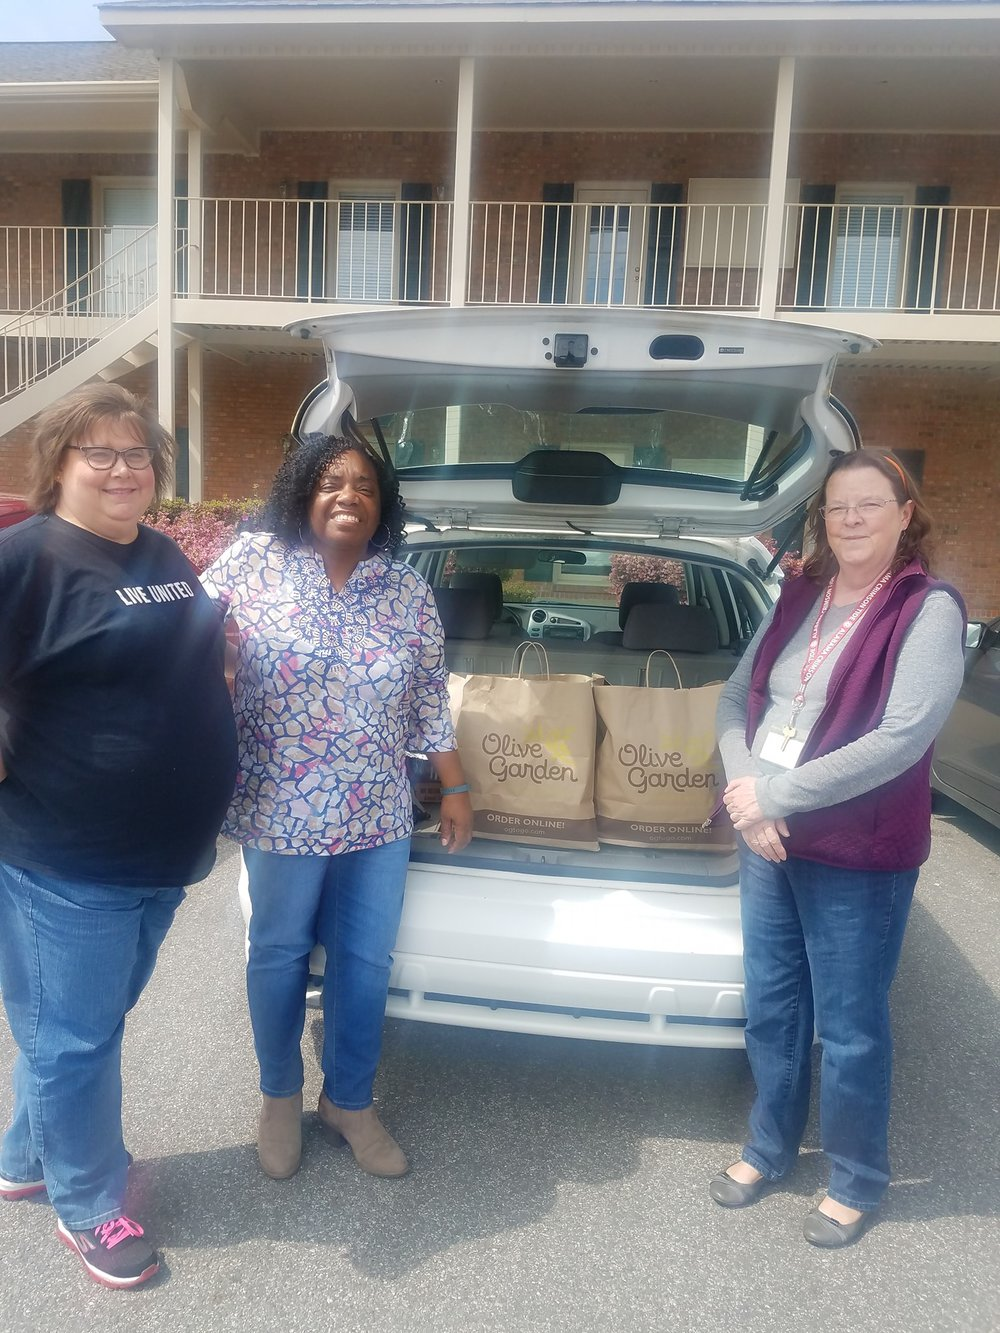 Special thanks to Woodland Forest Elementary PTA for providing lunch to our shelter residents. Below is a picture of TP staff and Woodland PTA representative!